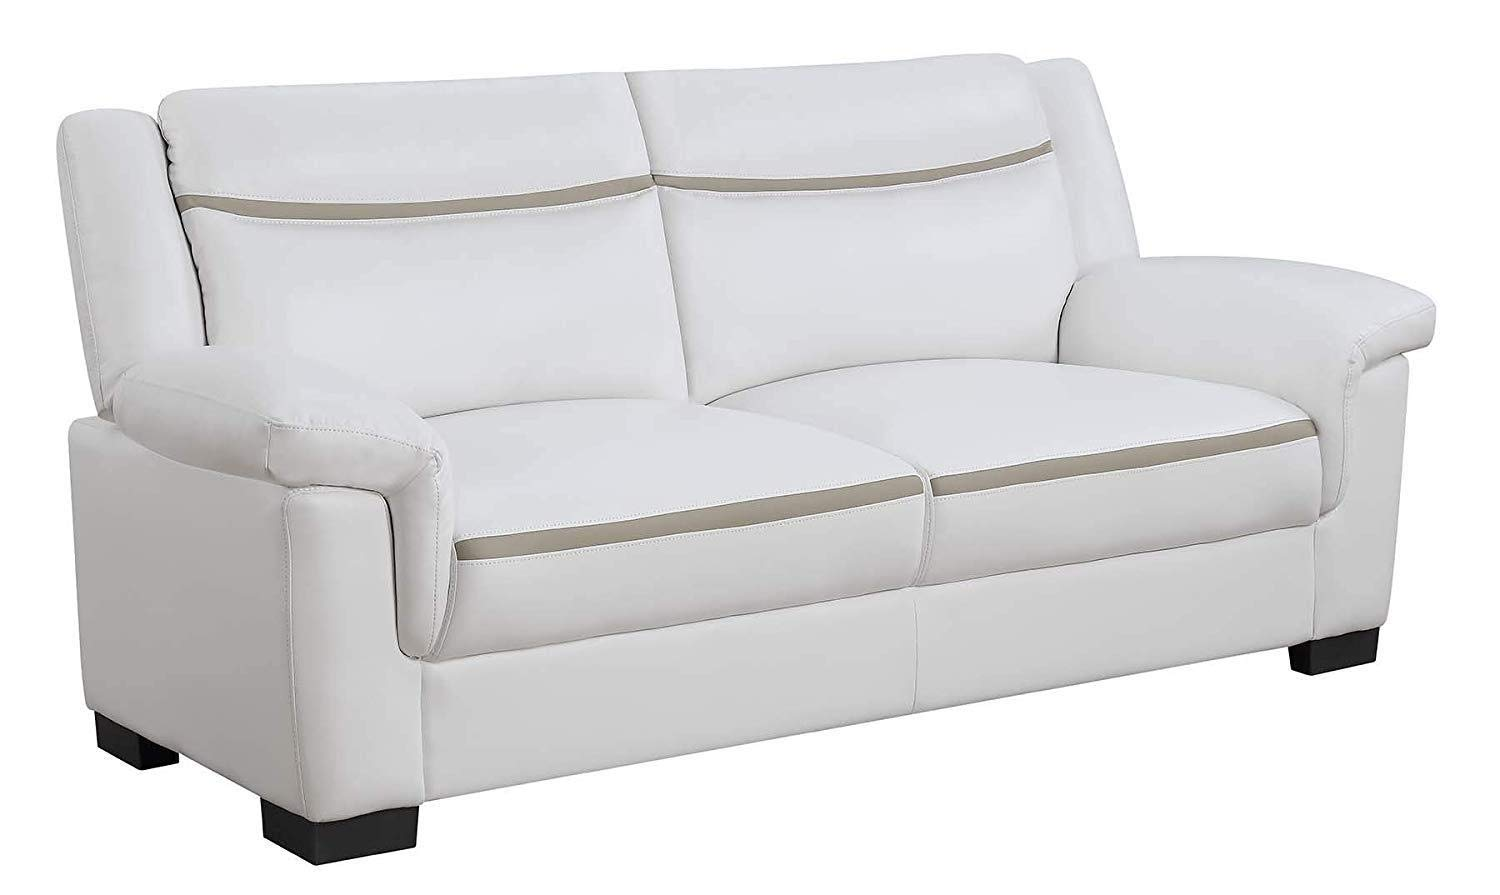 Coaster Home Arabella White Faux Leather Two-Piece Living Room Set White/Casual